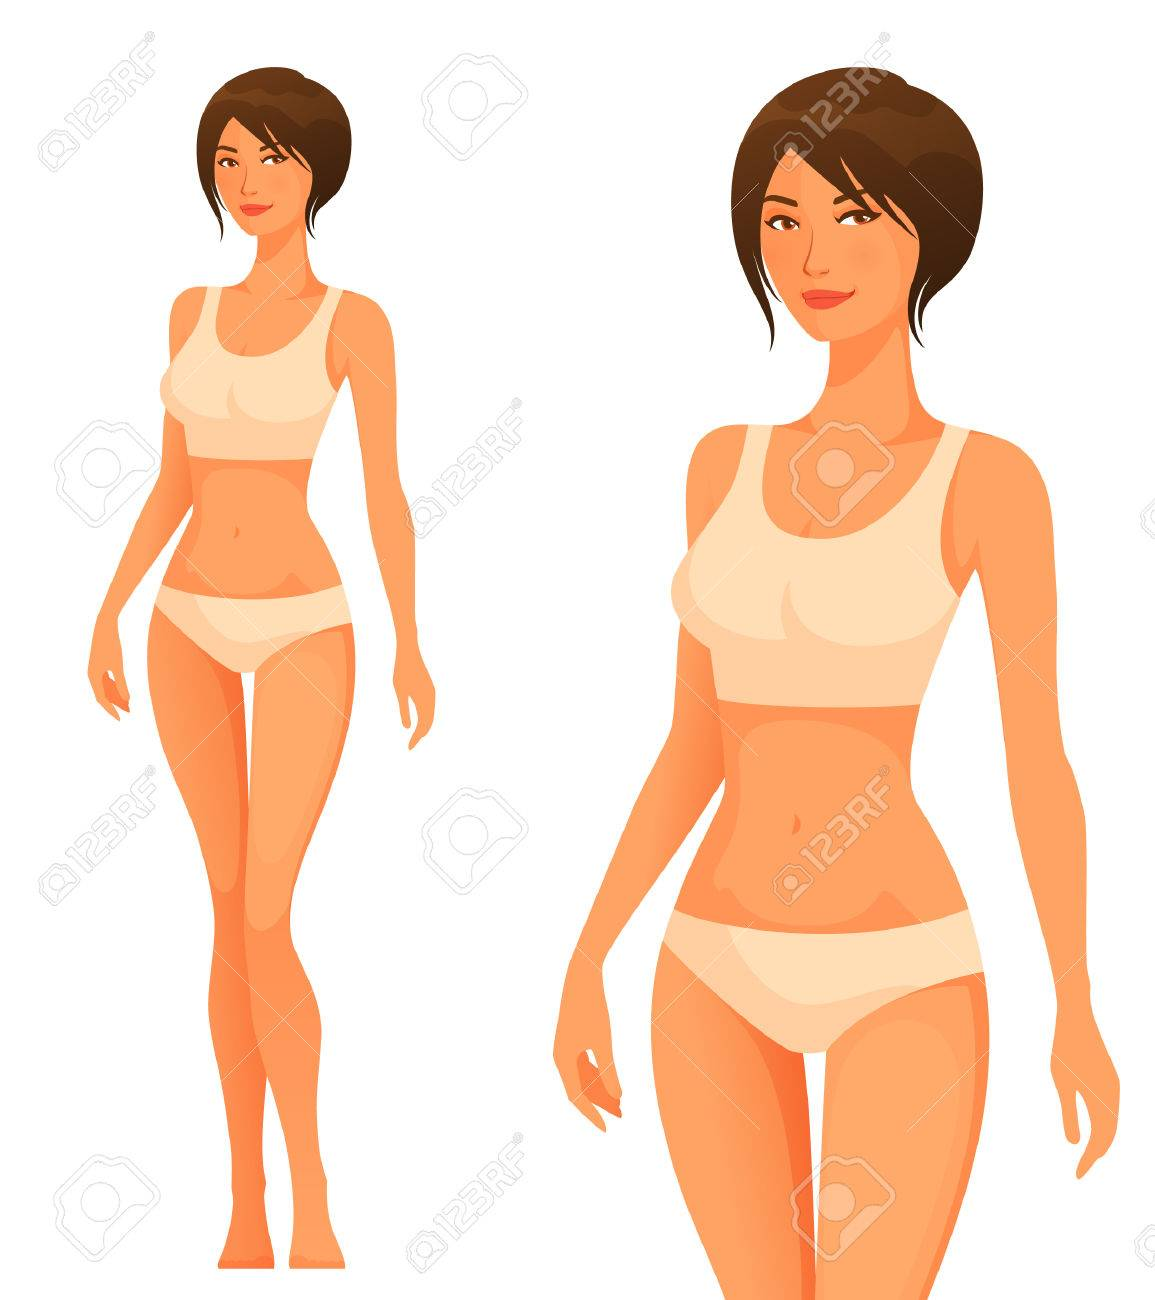 Slim Illustrations and Clipart. 64,256 Slim royalty free illustrations, and  drawings available to search from thousands of stock vector EPS clip art  graphic designers.